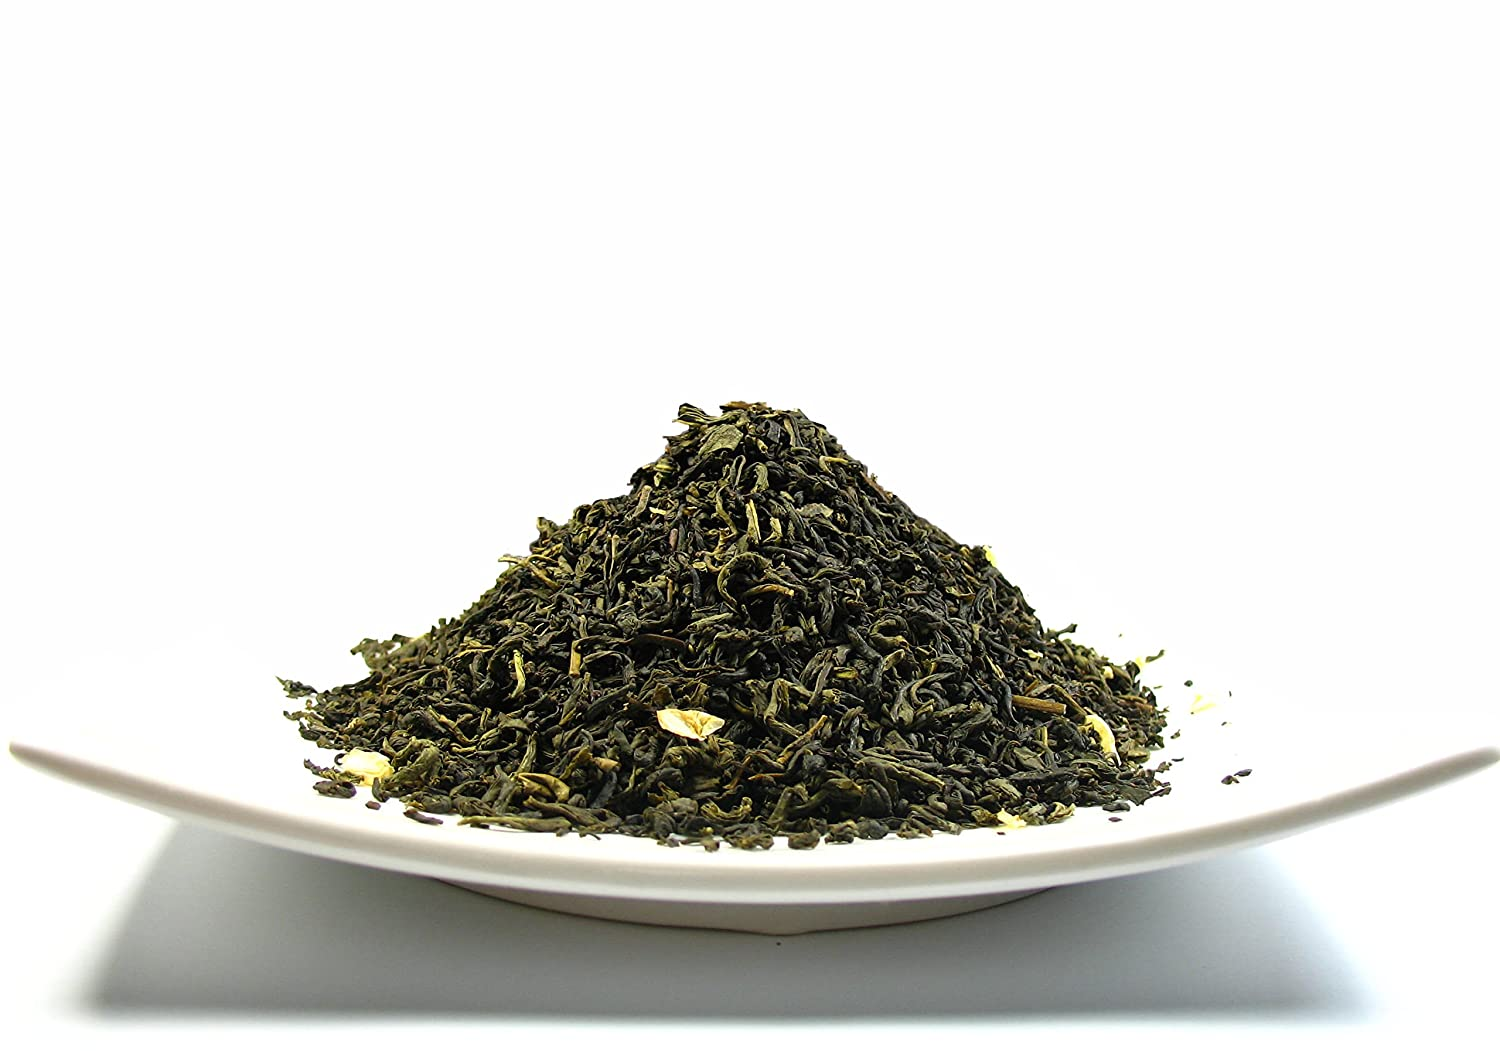 Decaf Jasmine Green Tea, Perfect beverage who wish for Caffeine-Free Tea - 1lb Tea Bag